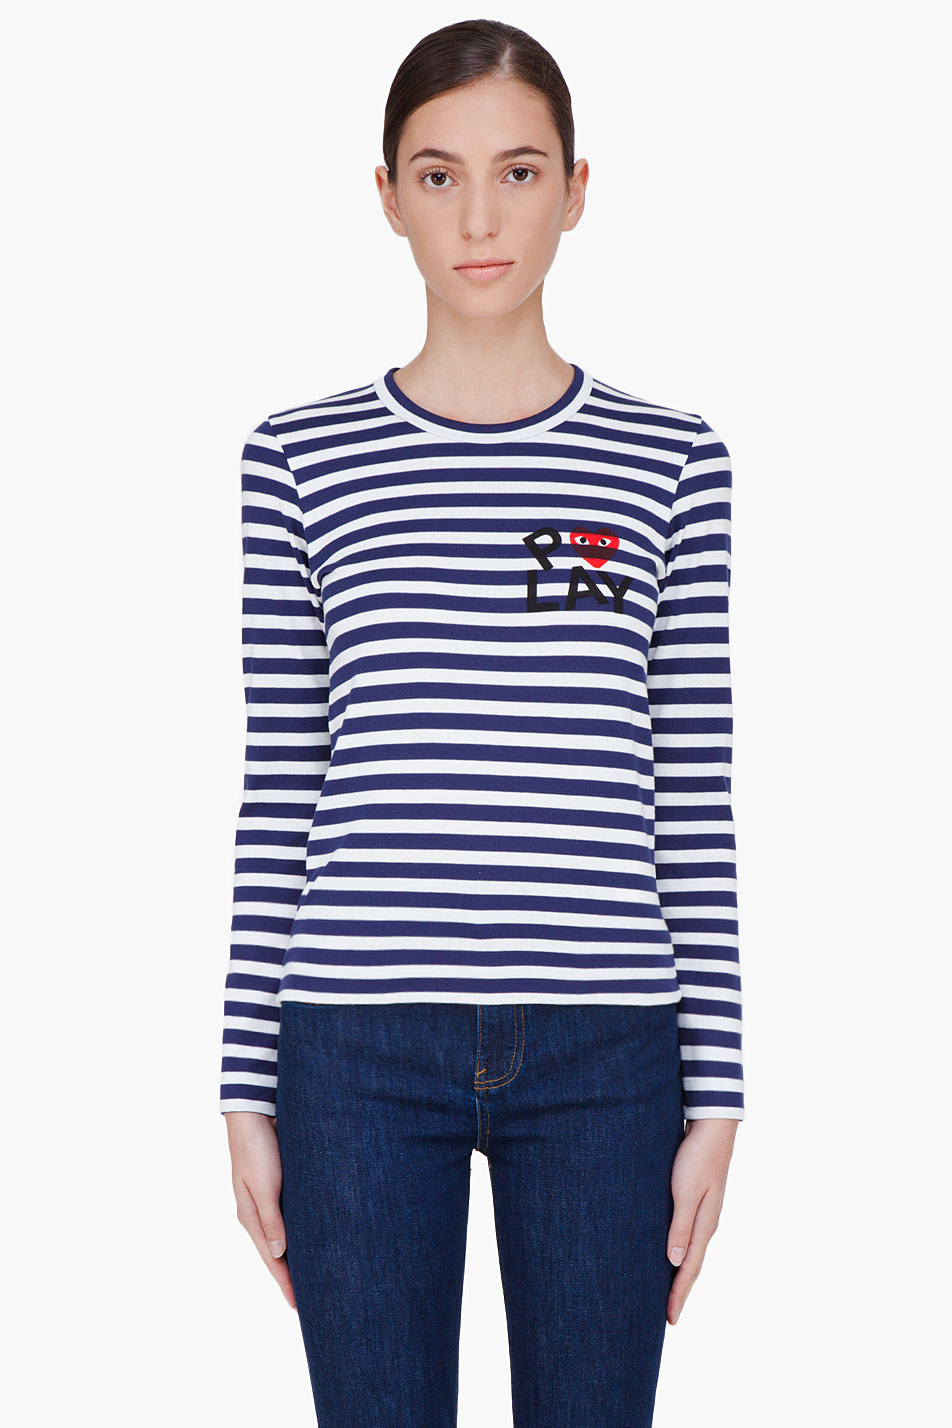 comme des garons play navy striped emblem t_shirt